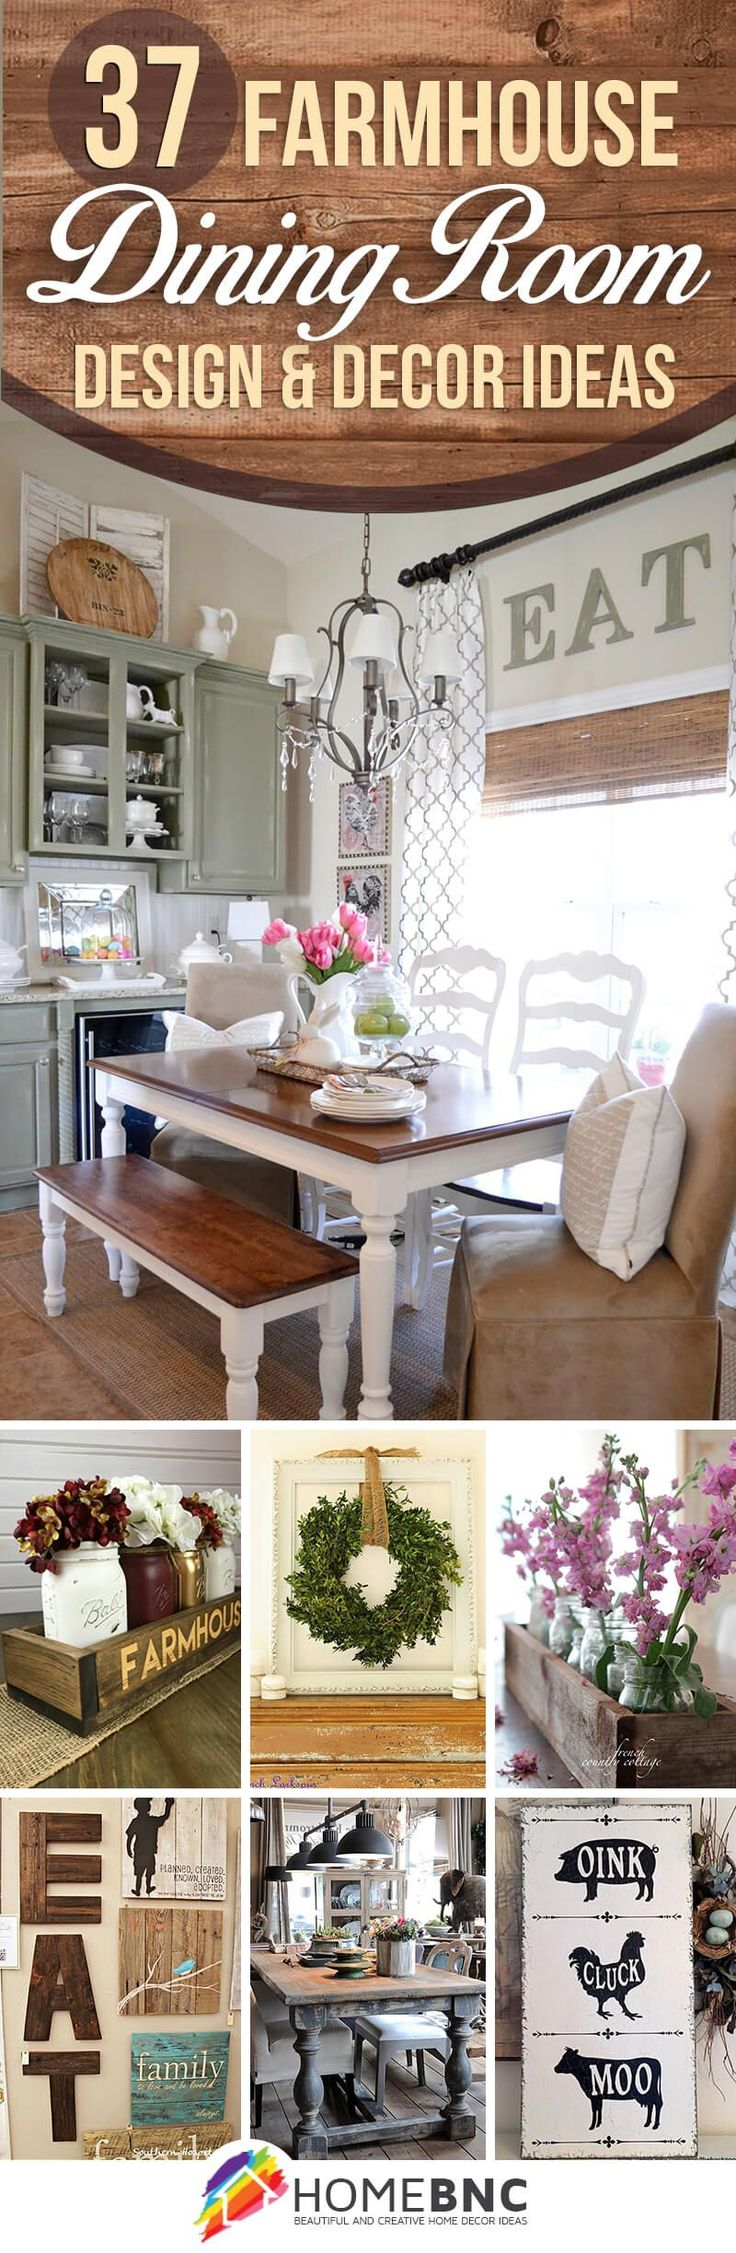 Rustic Dining Room Ideas rustic dining room images 37 Timeless Farmhouse Dining Room Design Ideas That Are Simply Charming